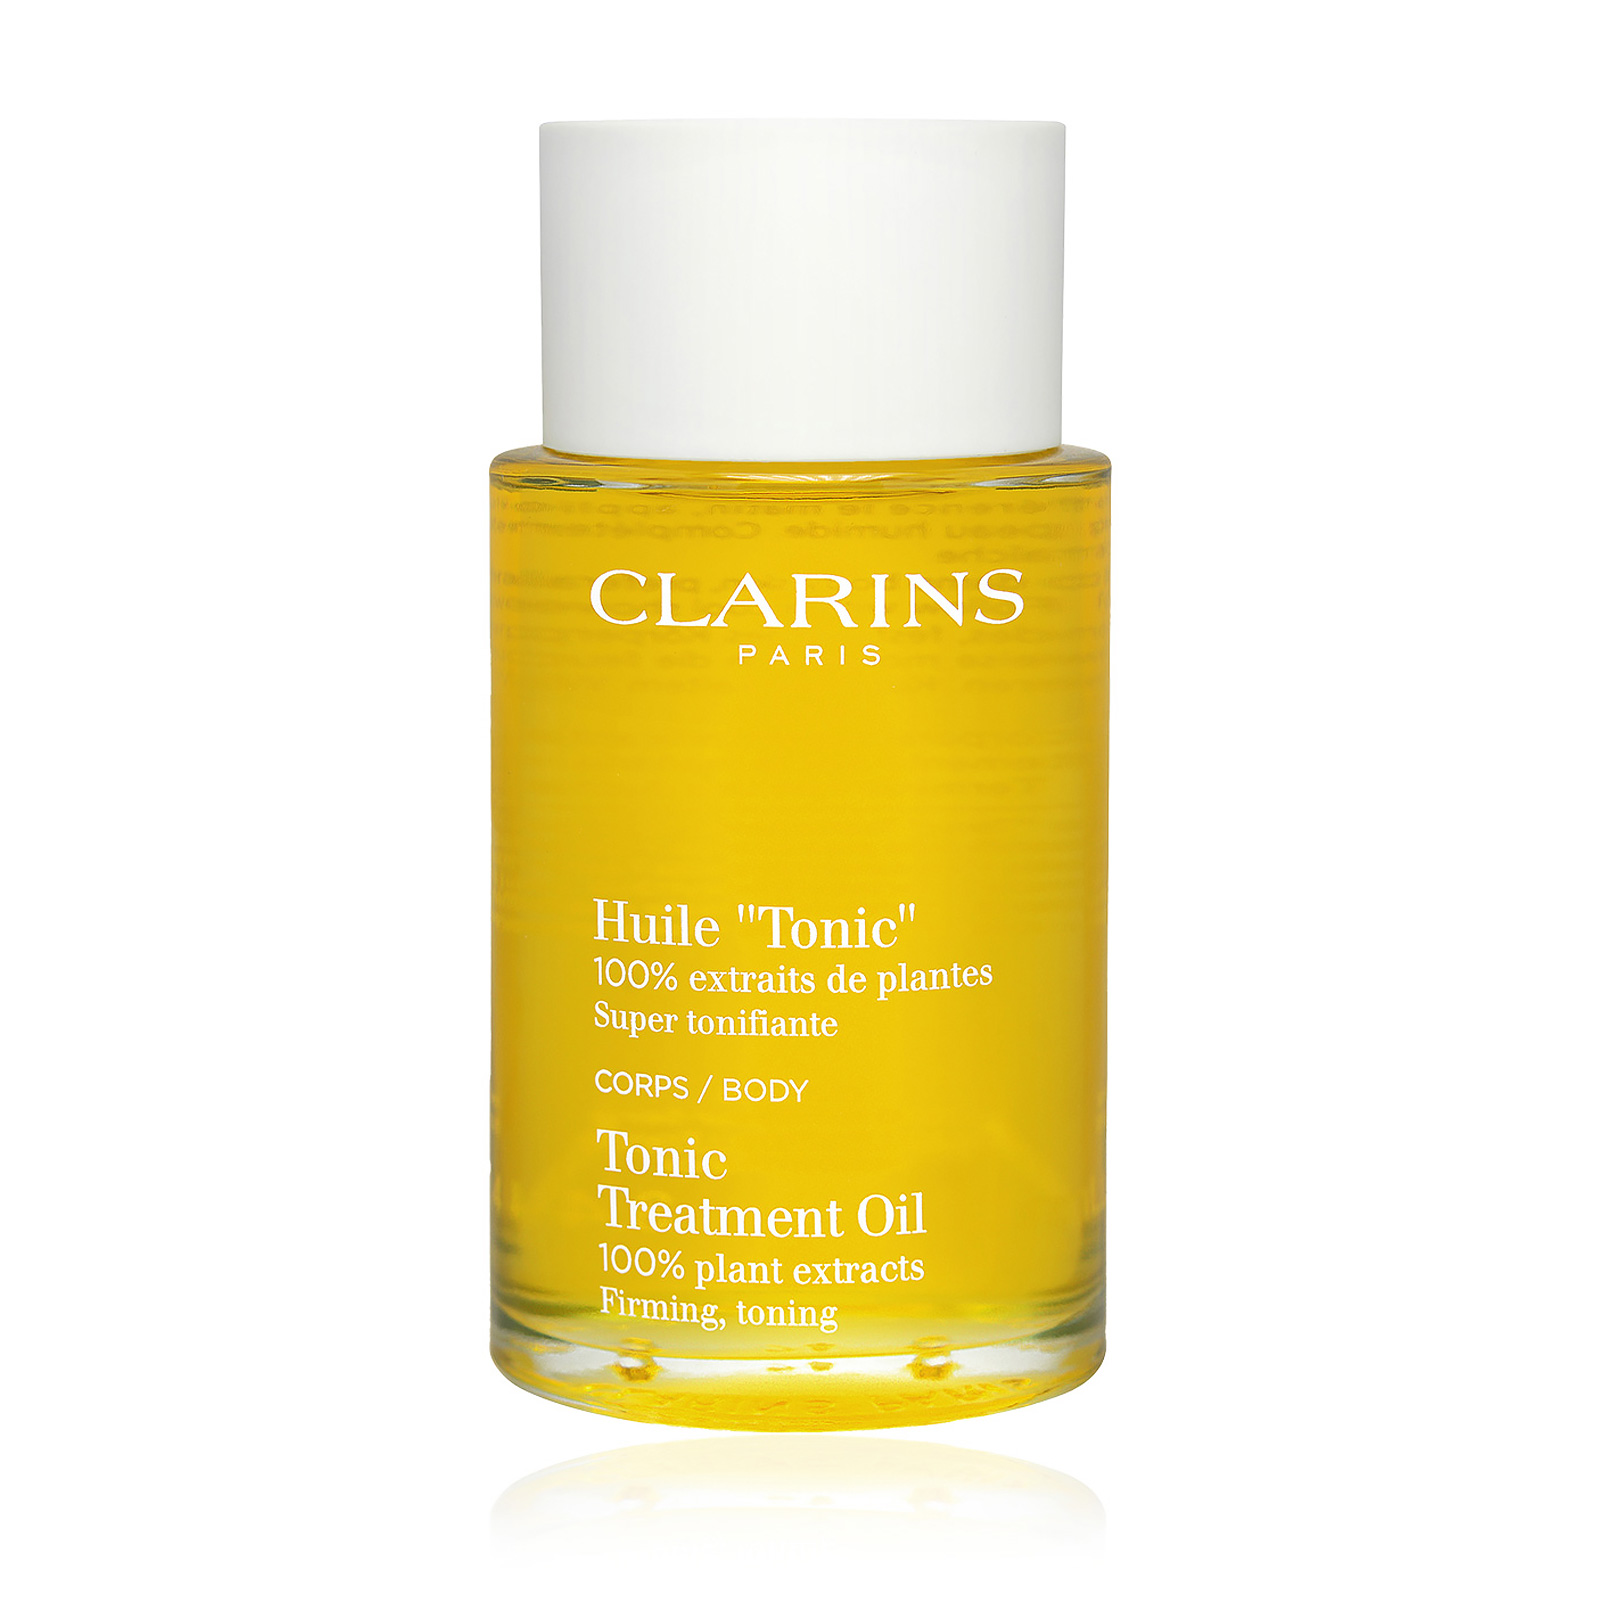 Body Treatment Oil (Firming & Toning)